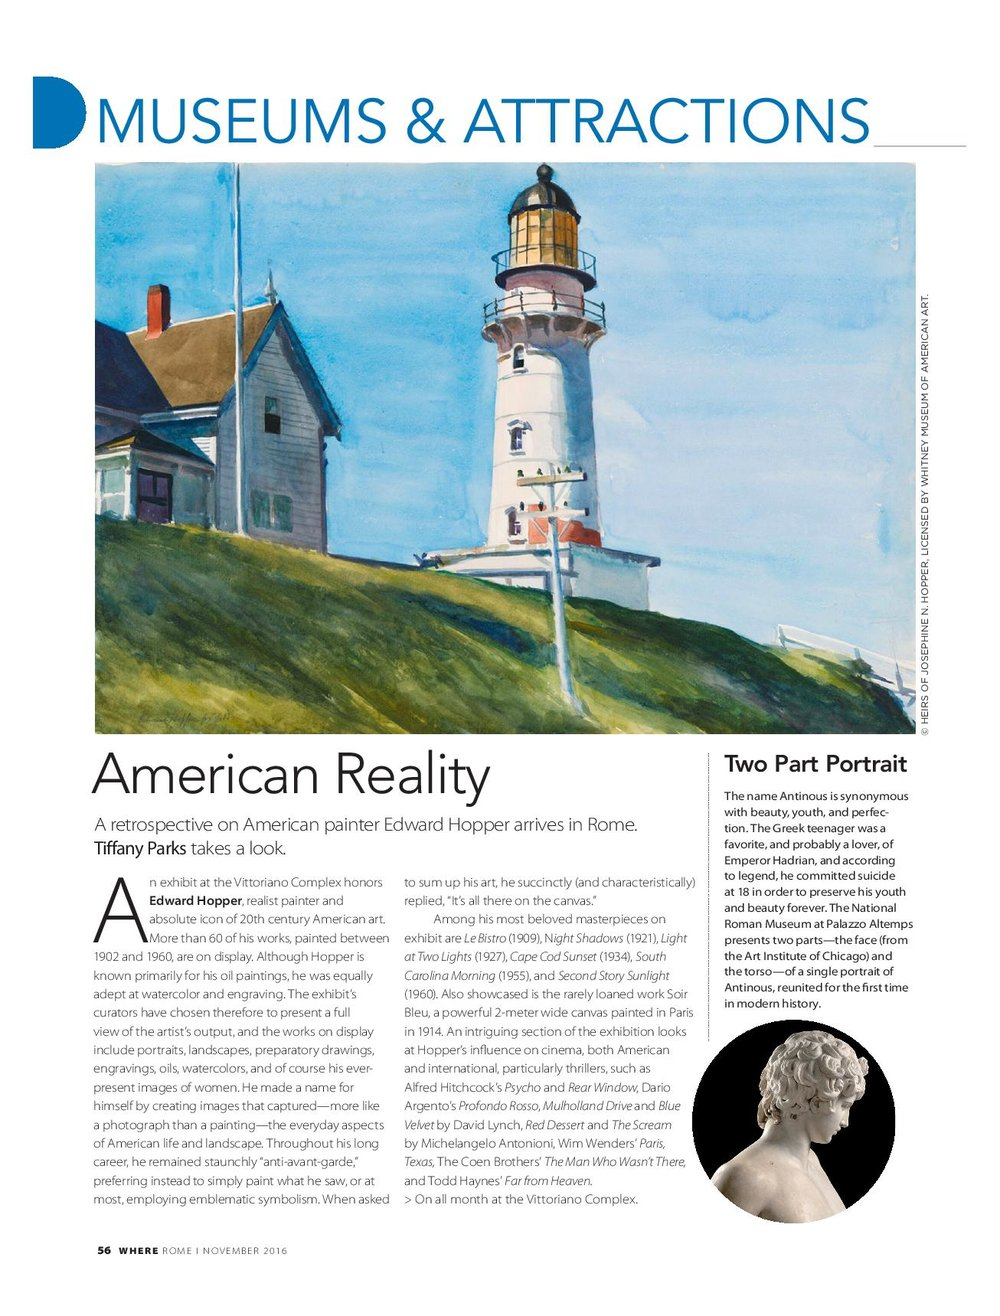 American Reality, Where Rome, December 2016-page-001.jpg